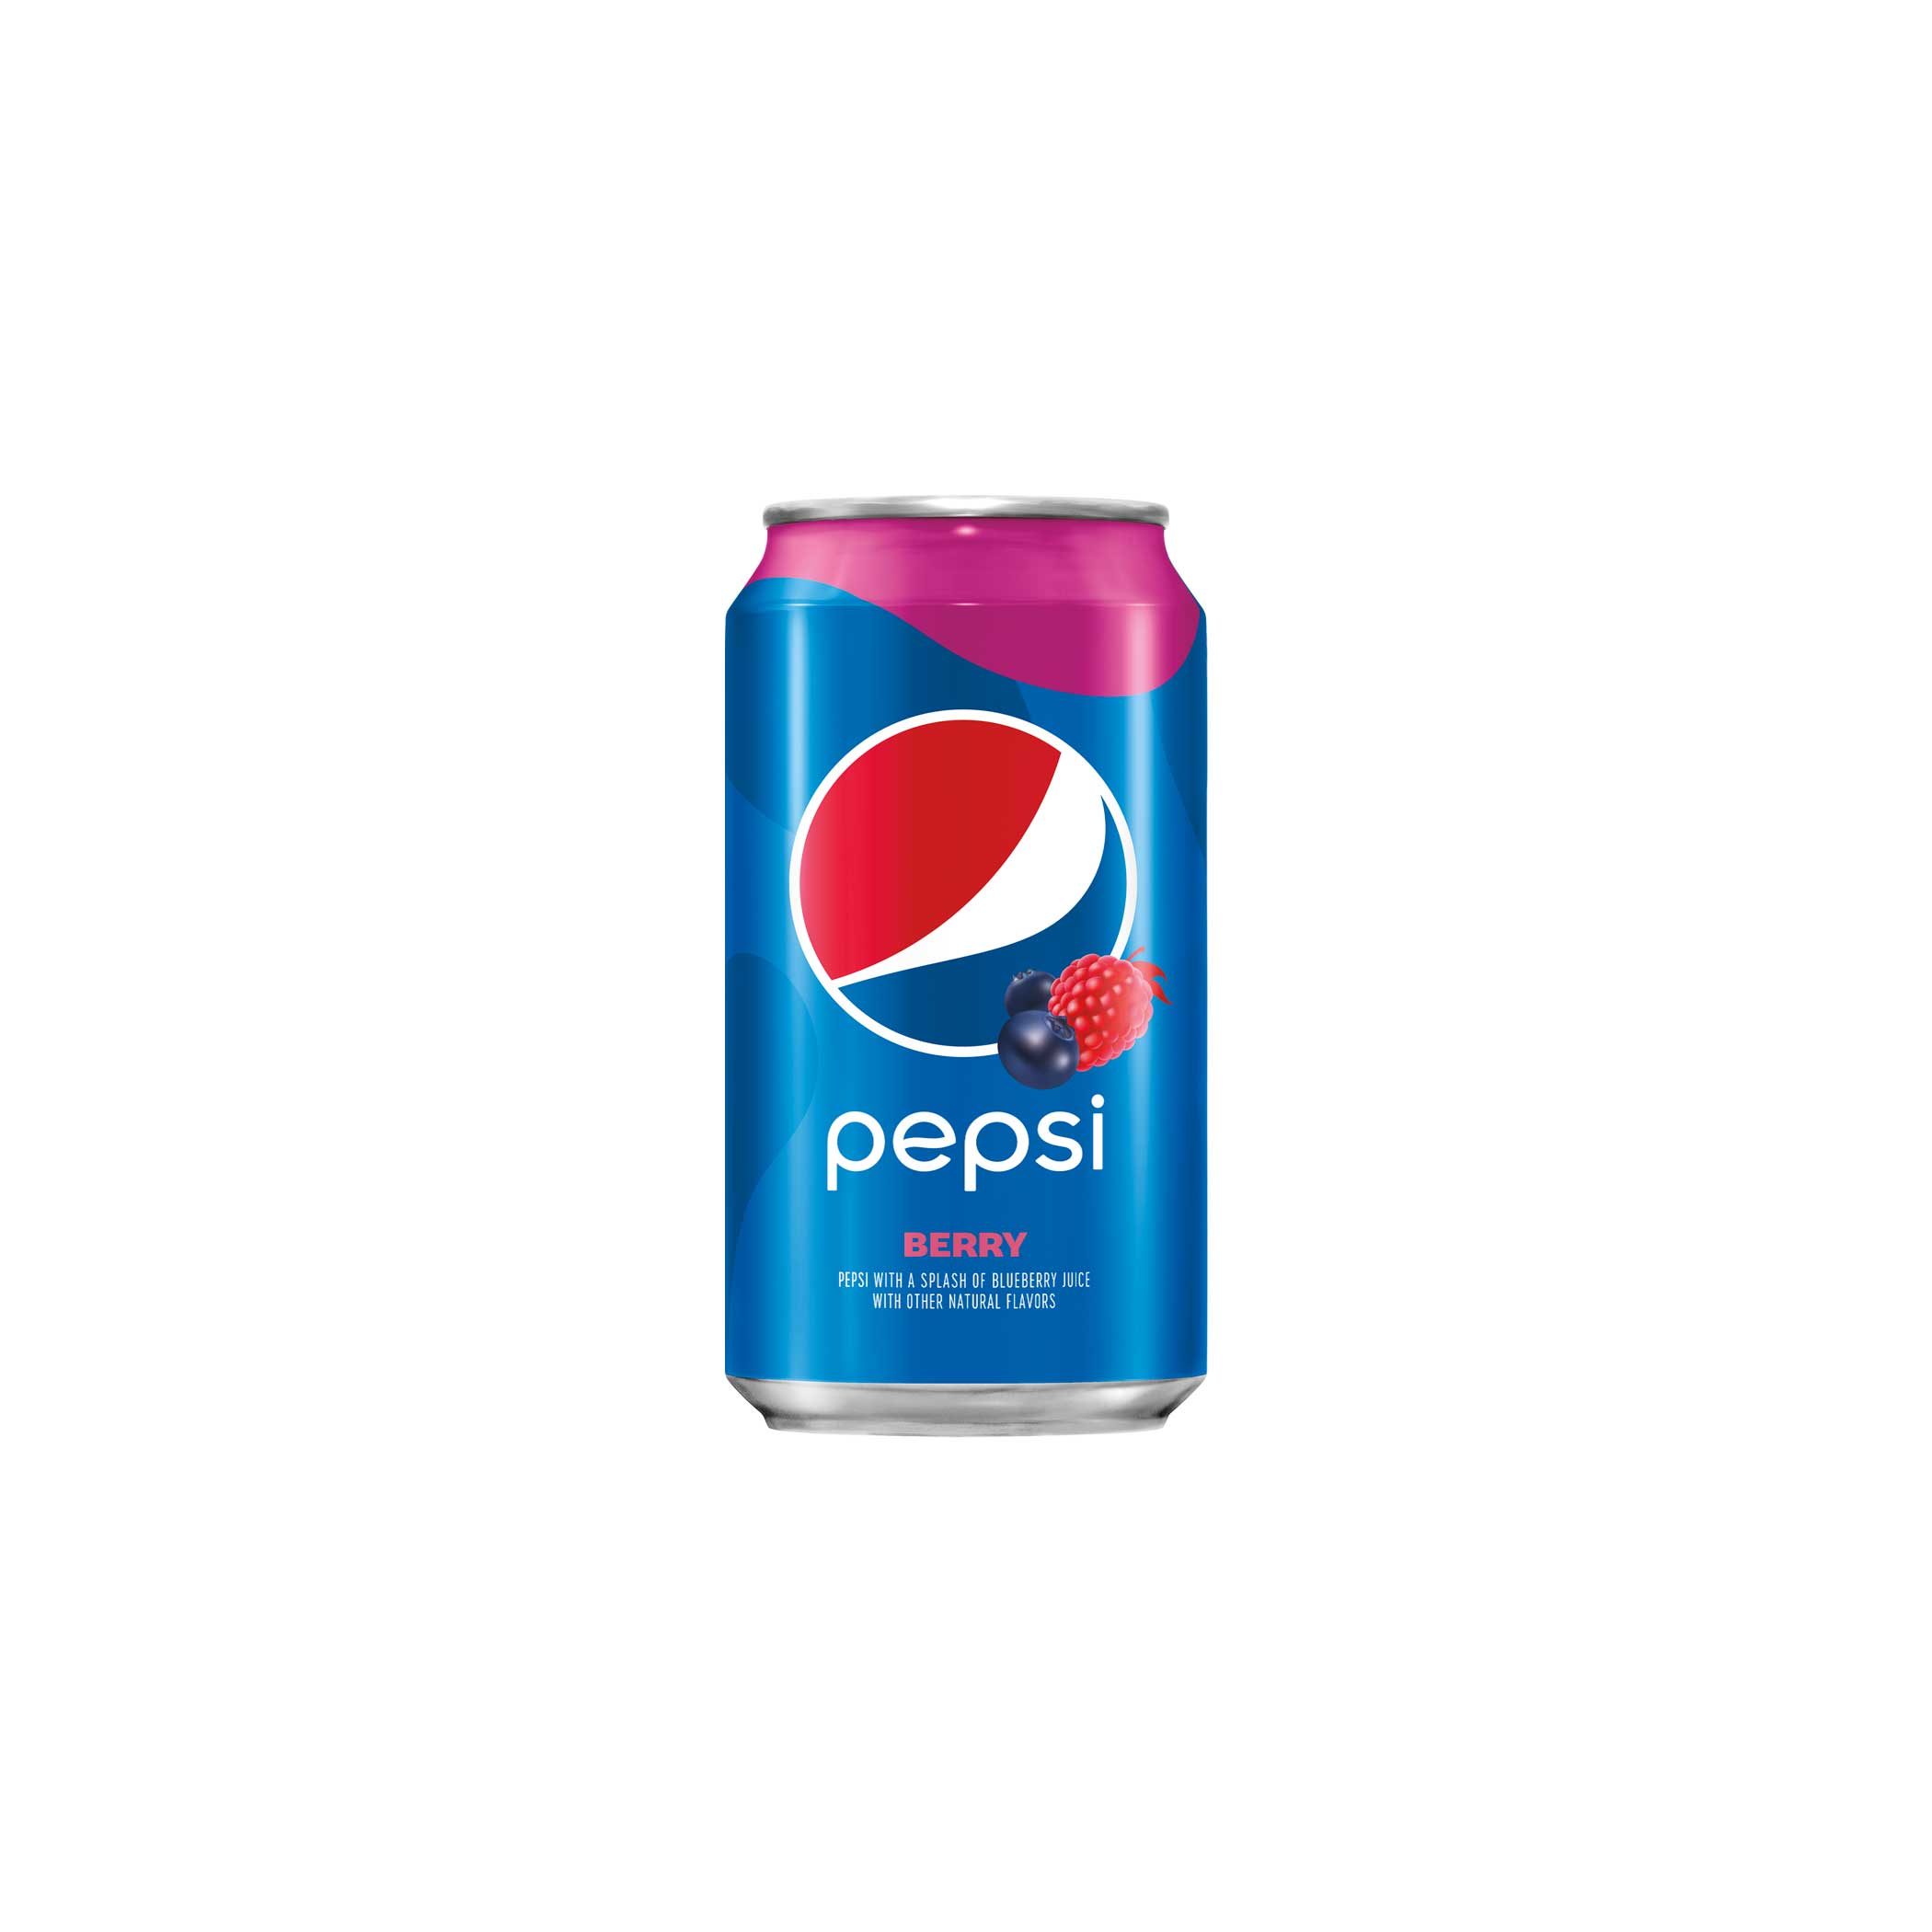 Pepsi® Splashes into Spring with Three New Flavors